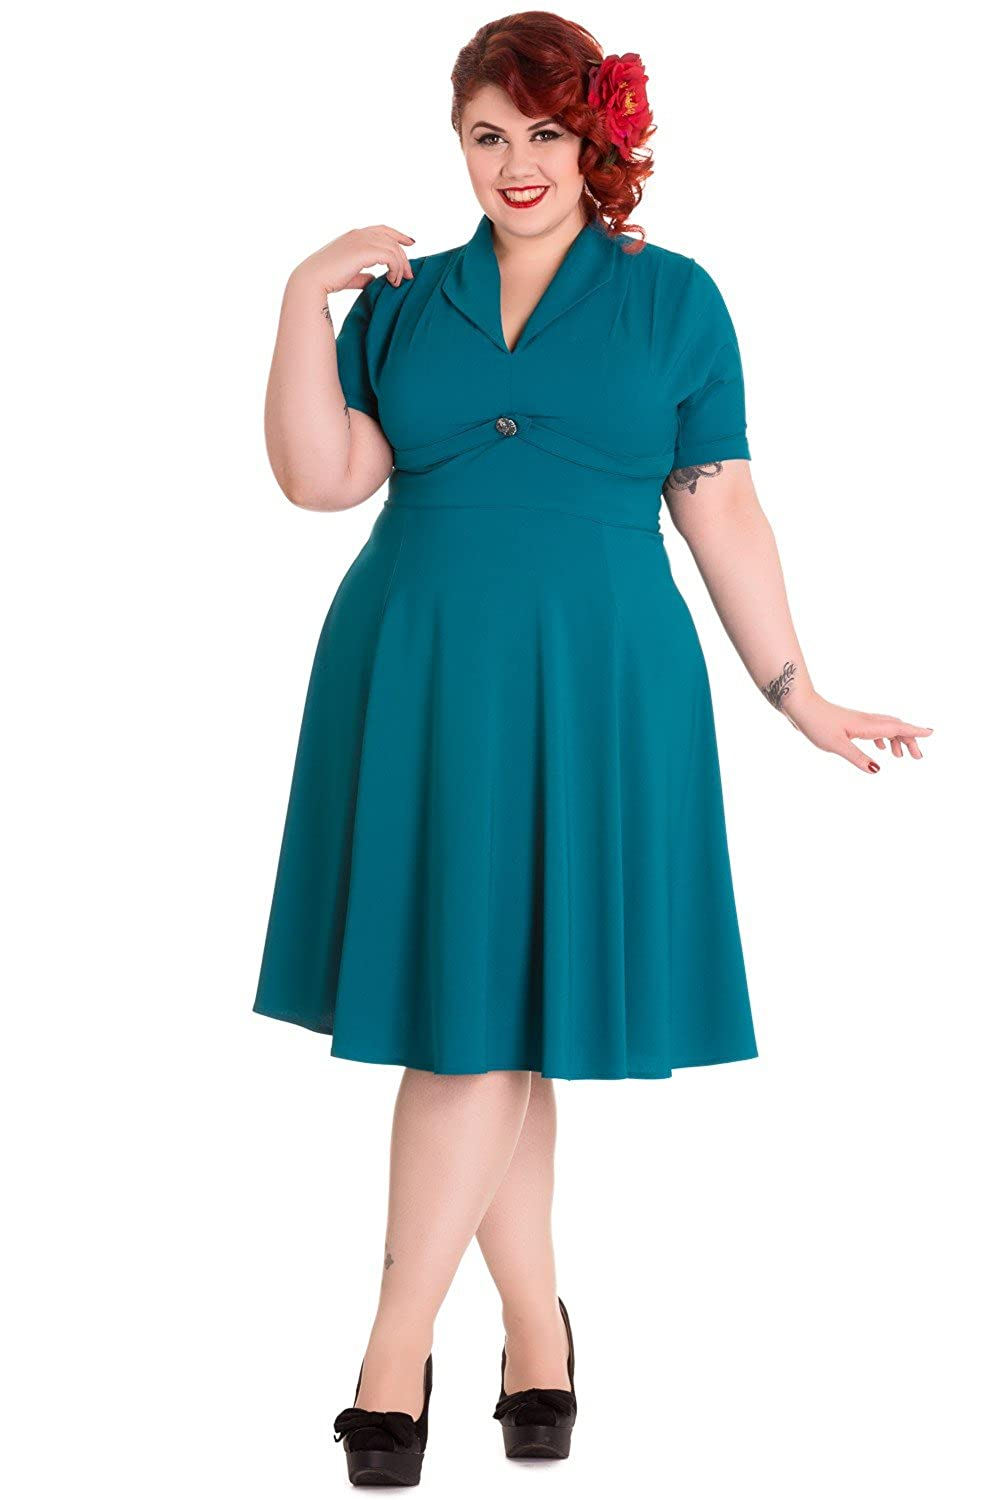 1950s Plus Size Dresses Hell Bunny Plus Size 60s Vintage Style Jocelyn Flare PartyDress $87.00 AT vintagedancer.com